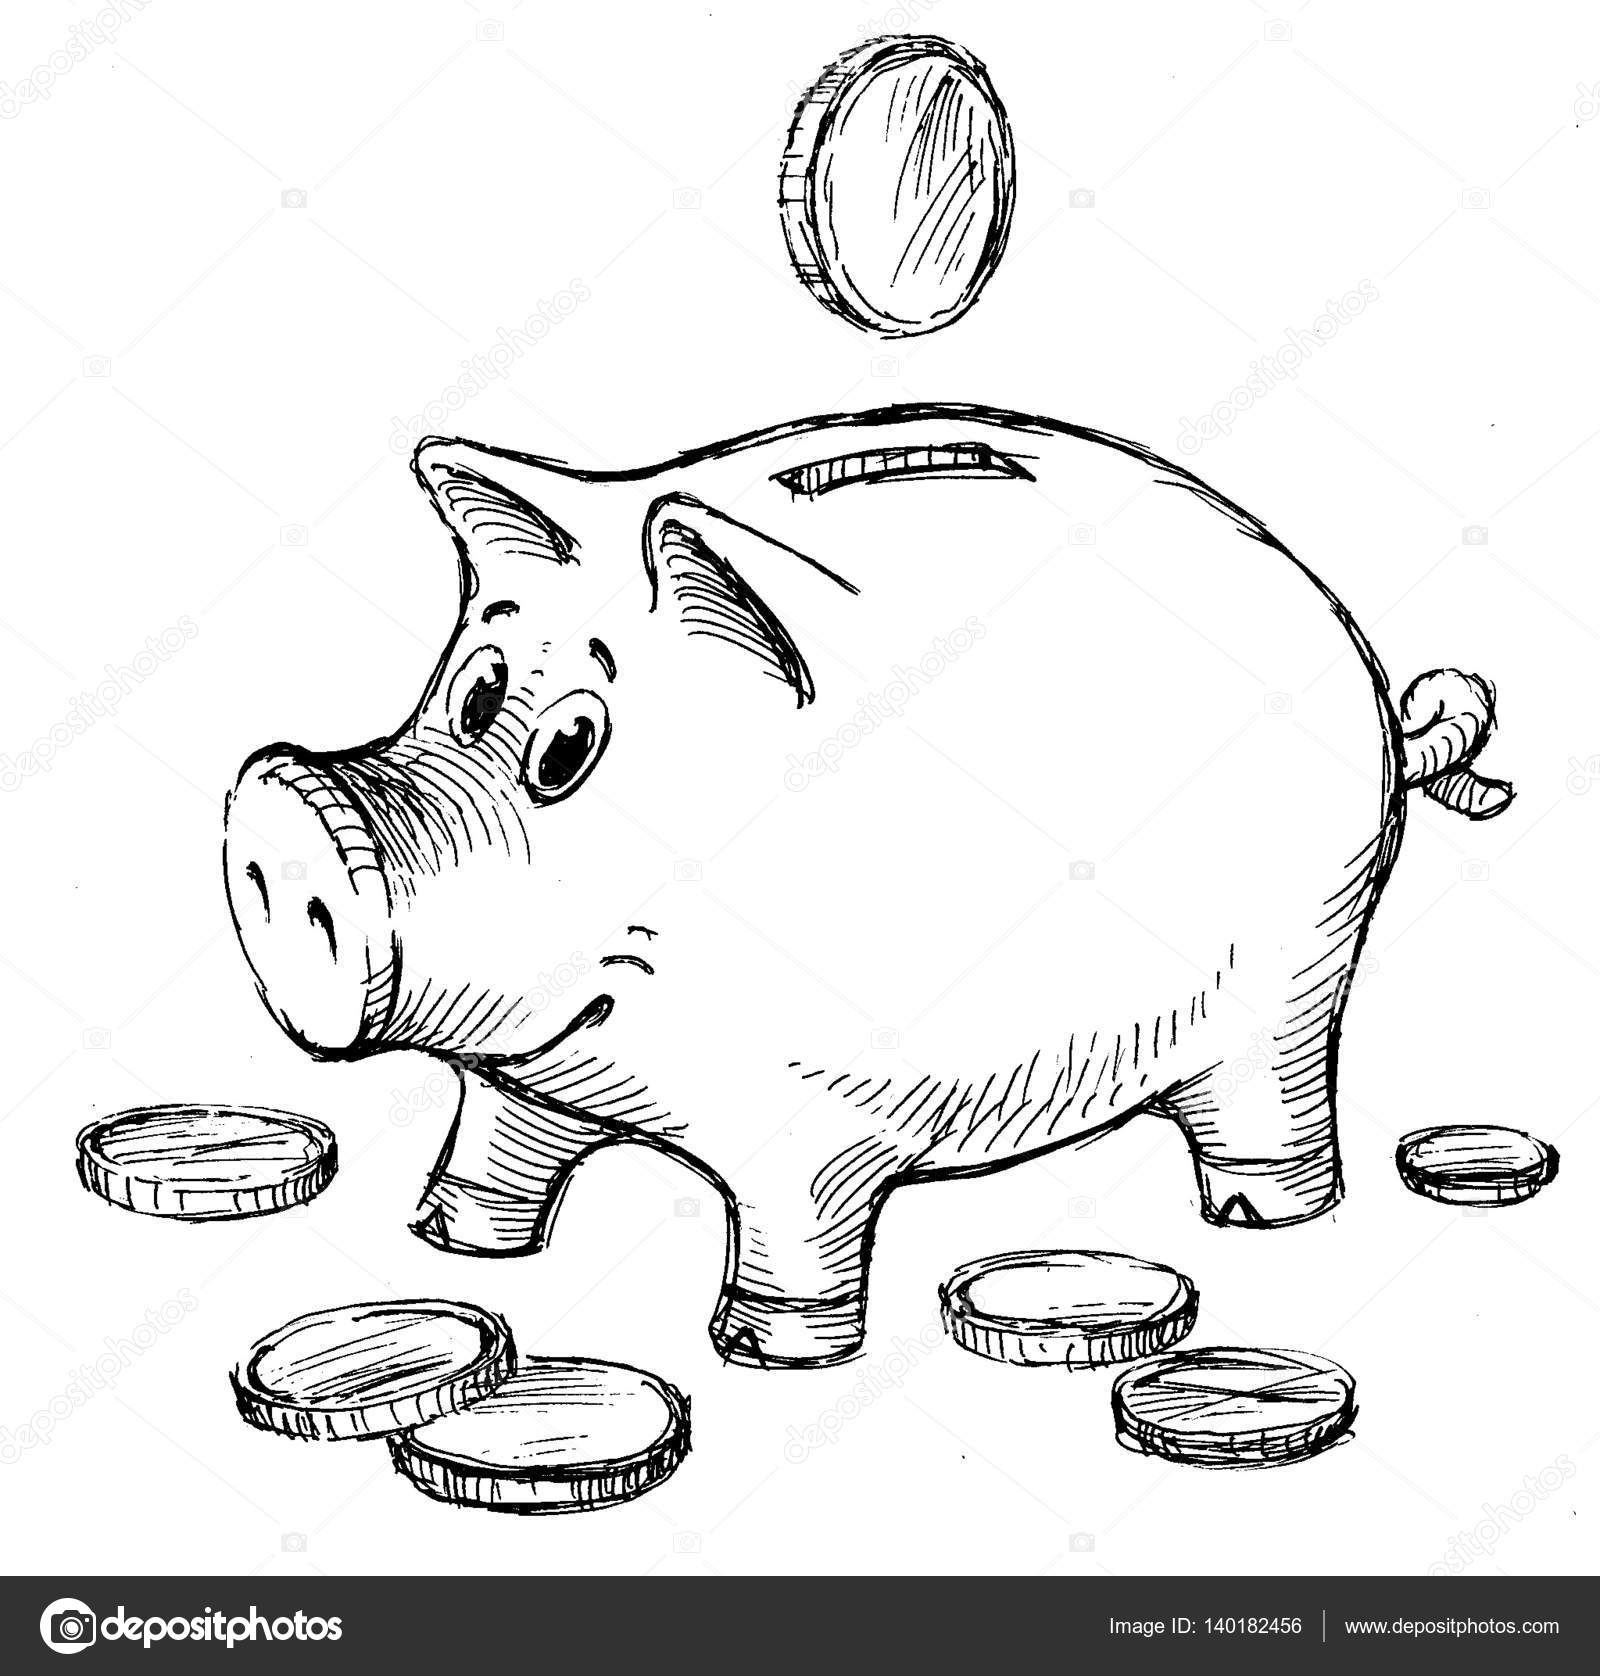 Line Drawing Piggy Bank : Sketch of a piggy bank with coins — stock photo